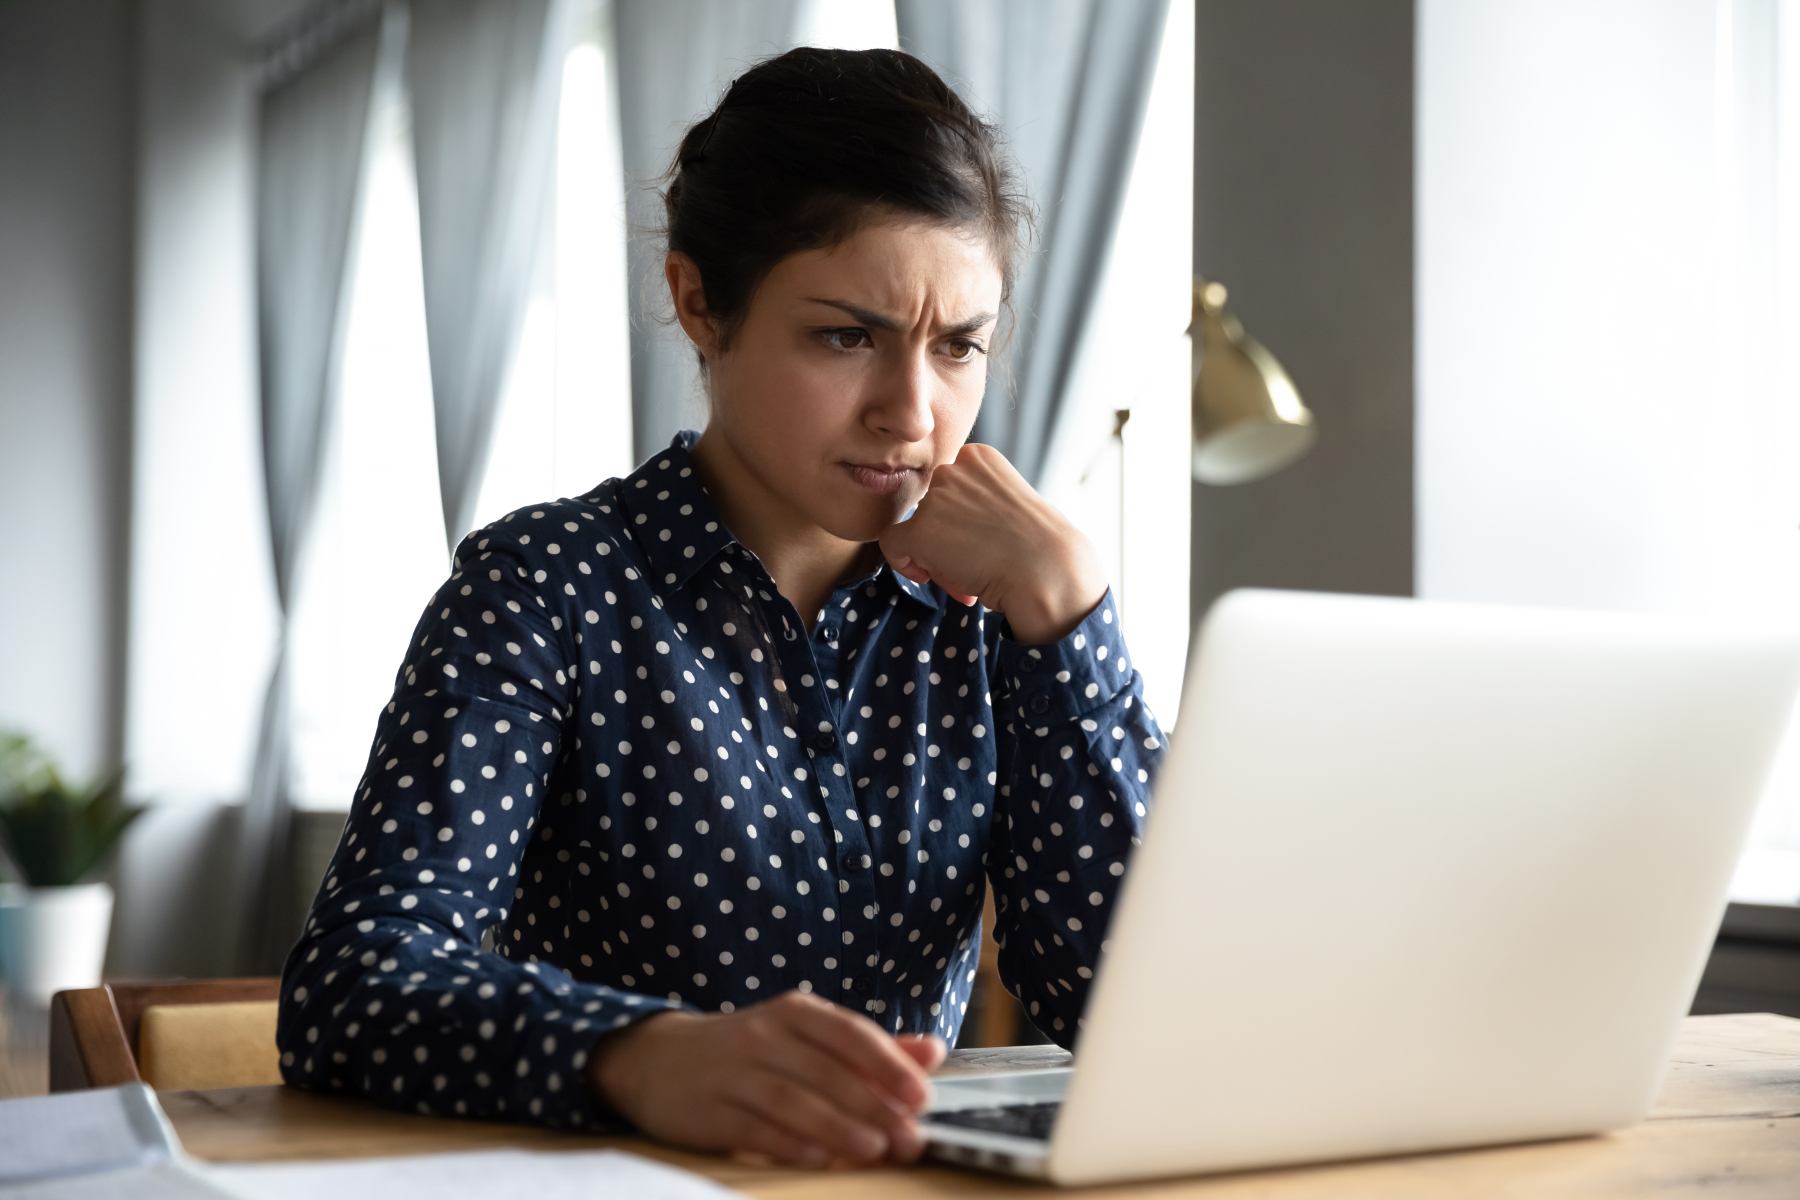 35331271-concerned-indian-woman-look-at-laptop-frustrated-about